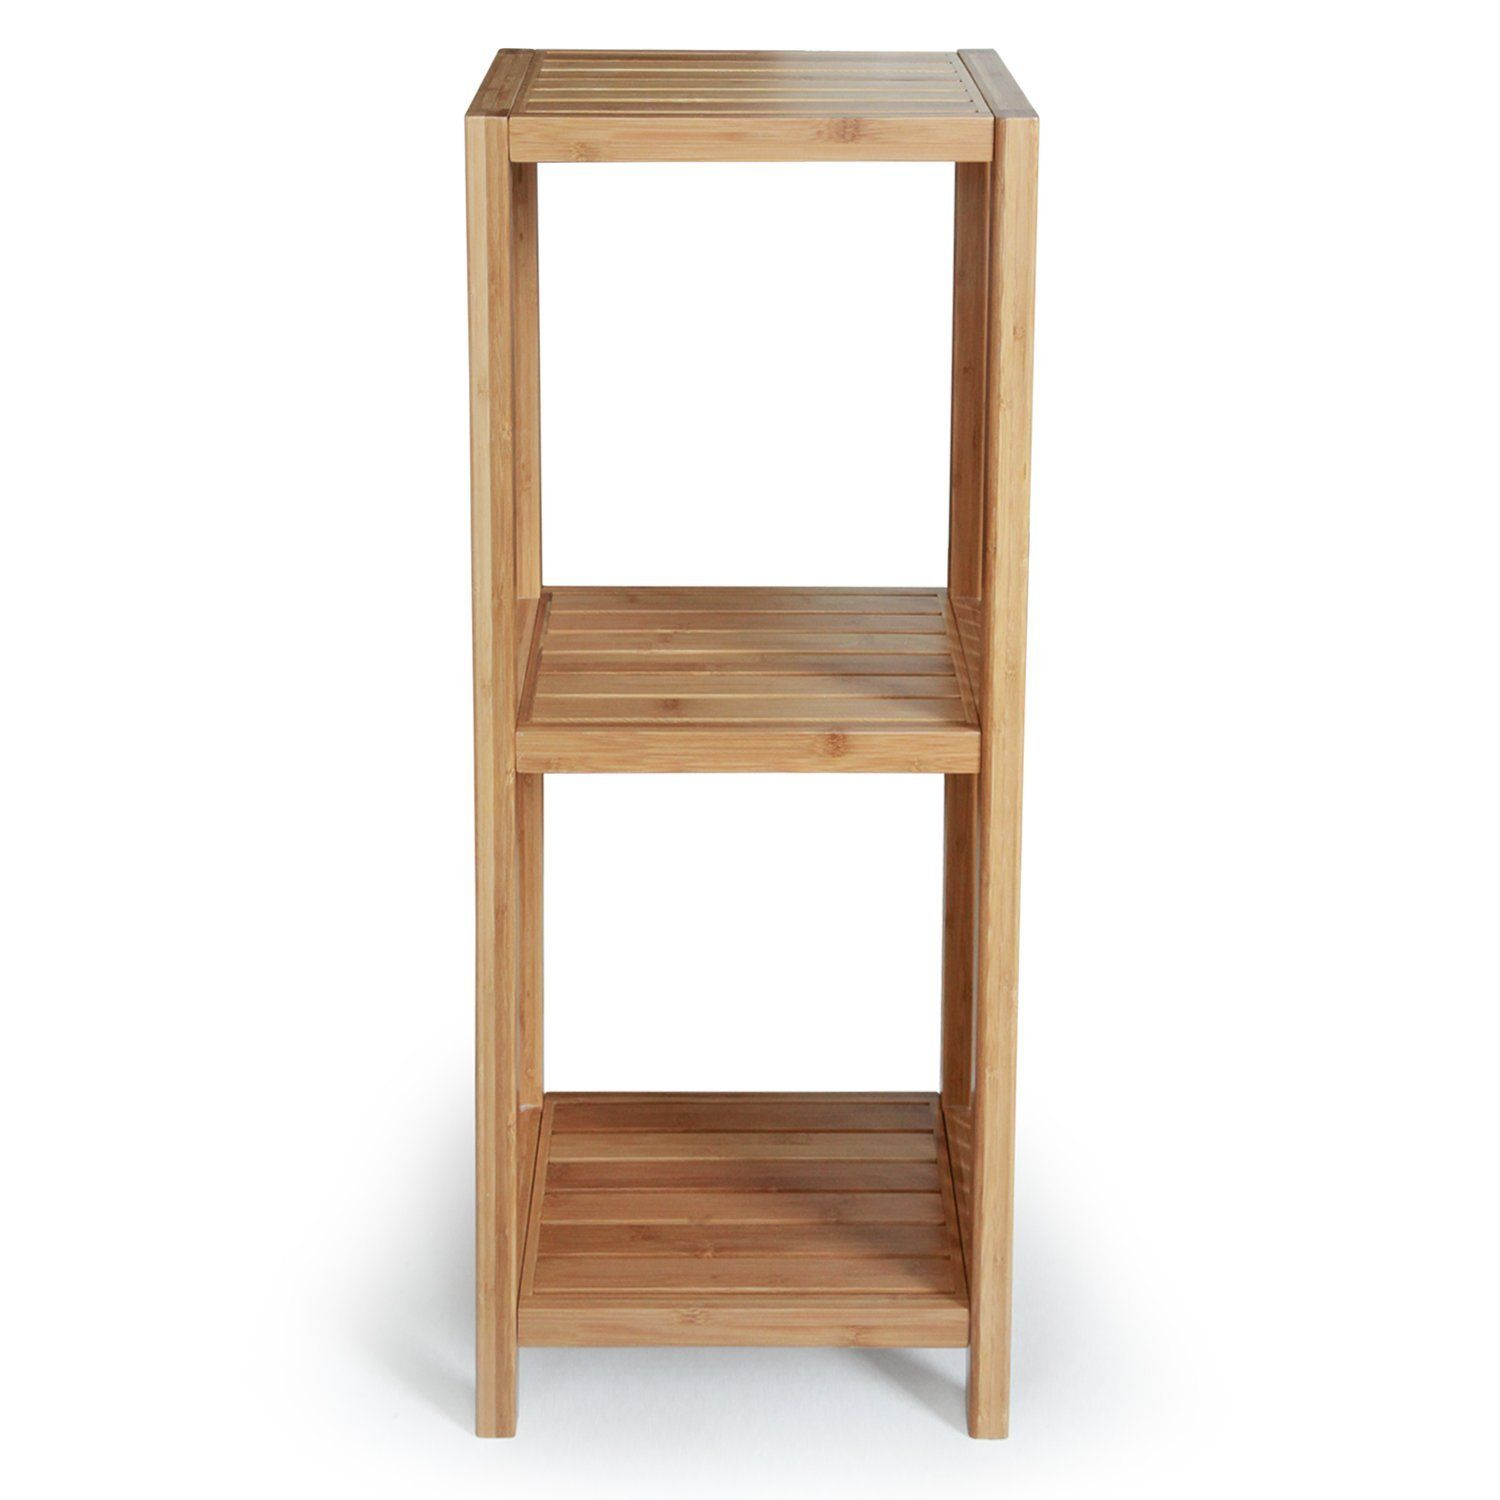 Toielttree Products Deluxe Bathroom Bamboo Freestanding Organizing Shelf 3 Tier Shelf Shelves Measure 14 Inches Wood Chair Bamboo Shelf Shelf Organization